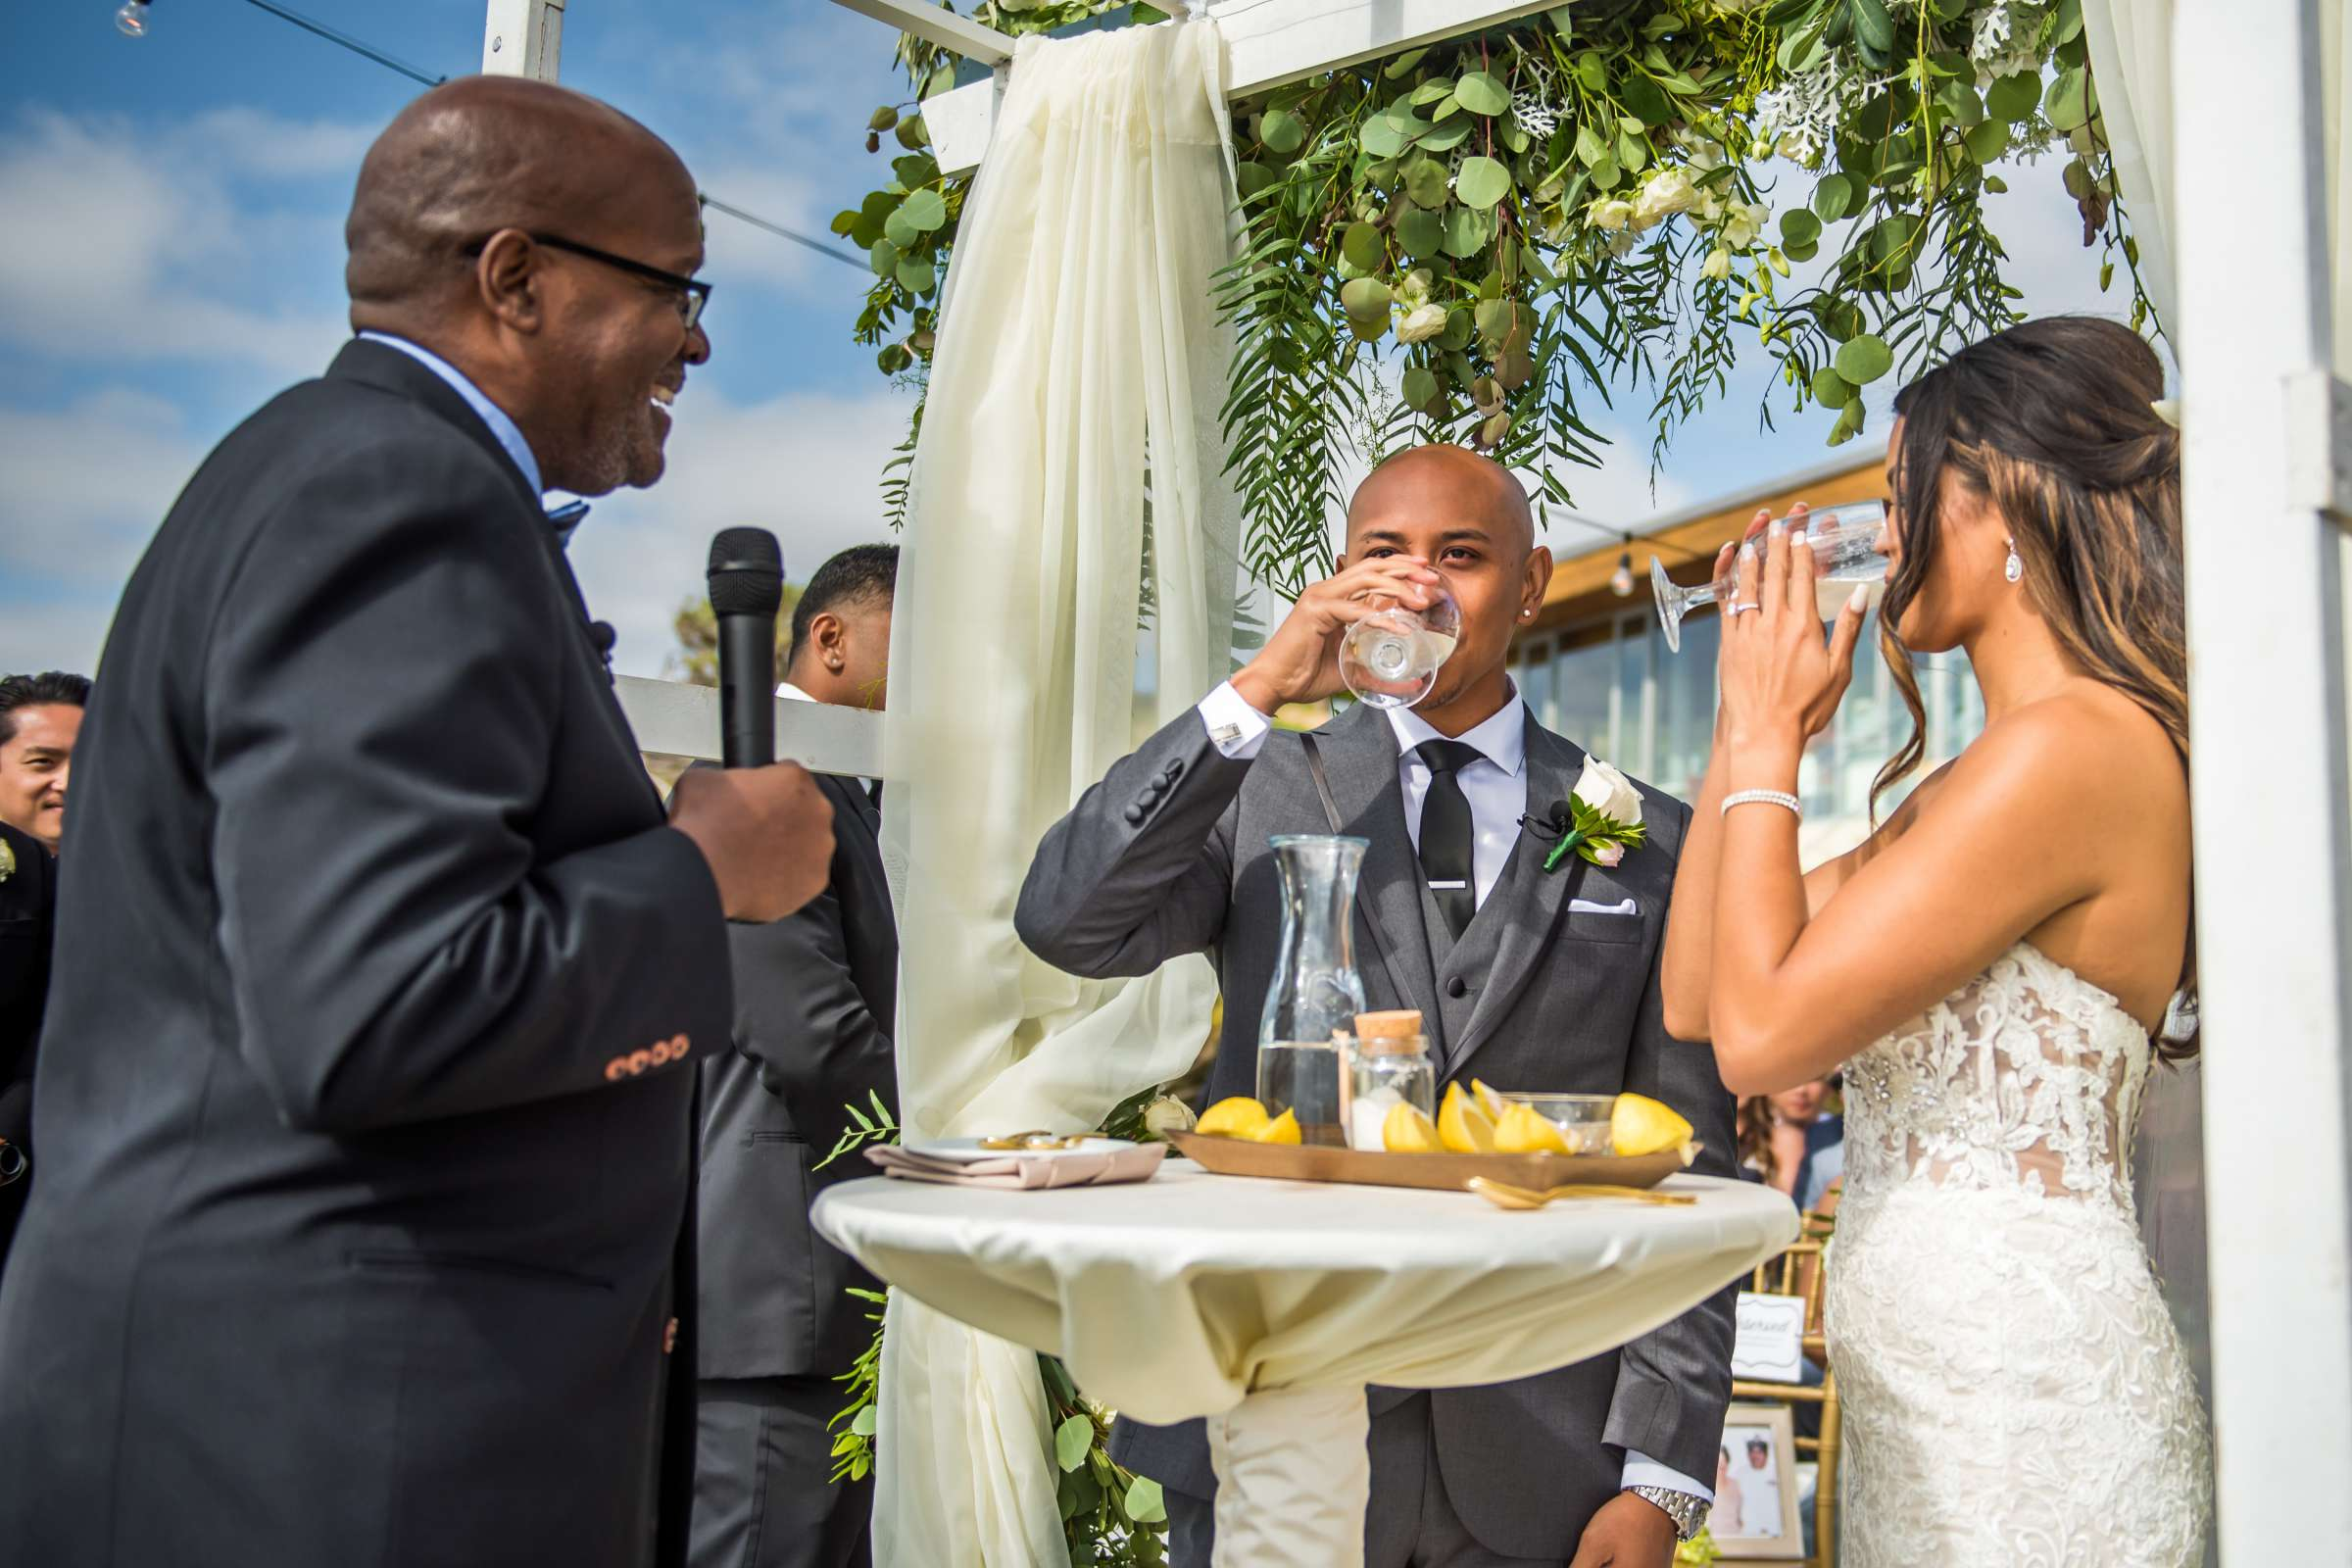 Scripps Seaside Forum Wedding coordinated by Lavish Weddings, Cindy and Justin Wedding Photo #381833 by True Photography